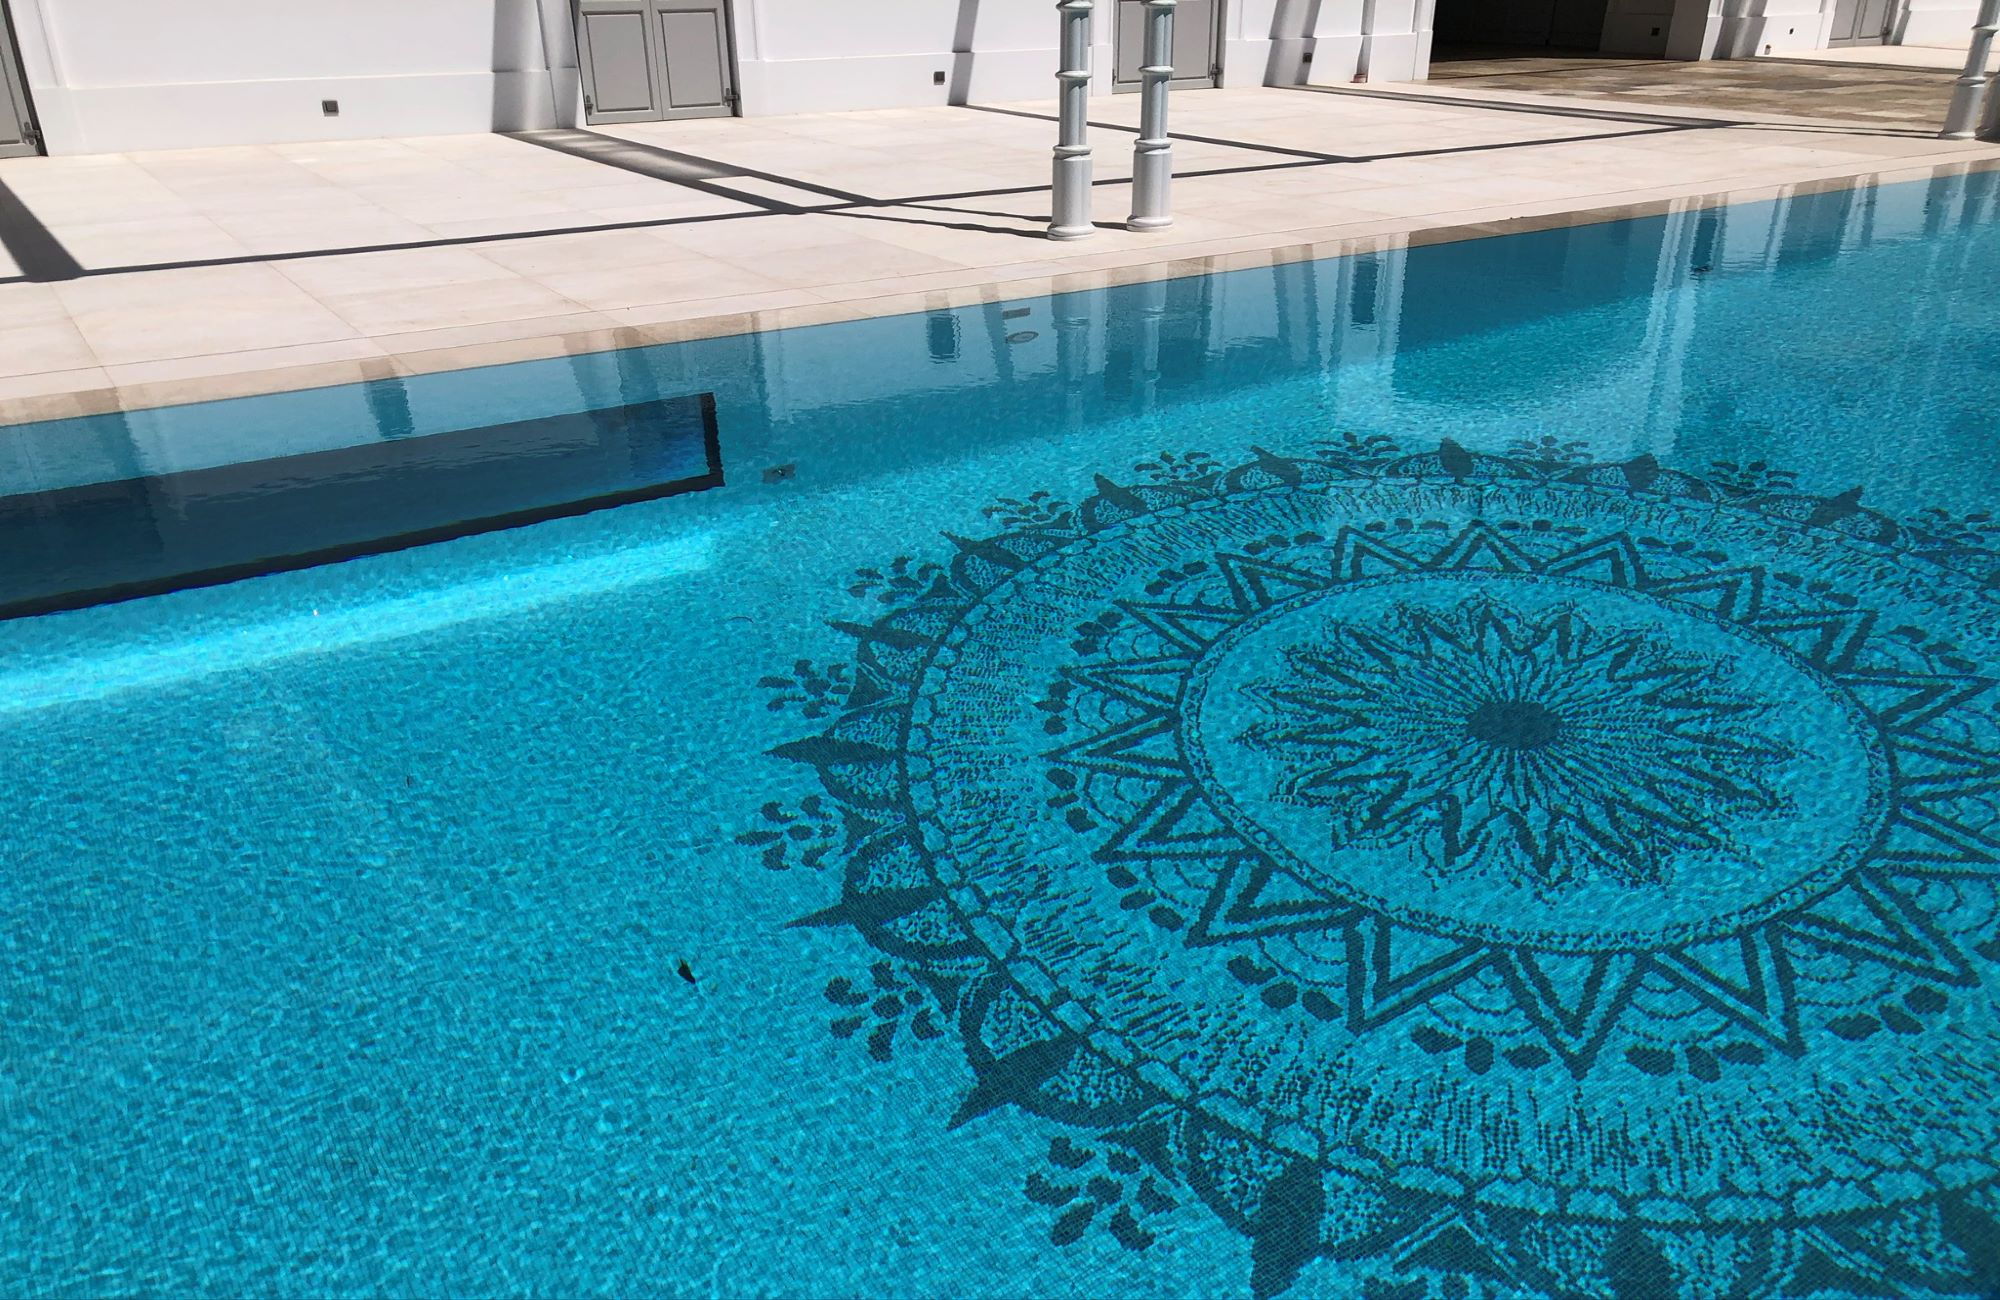 Trends in swimming pool mosaics